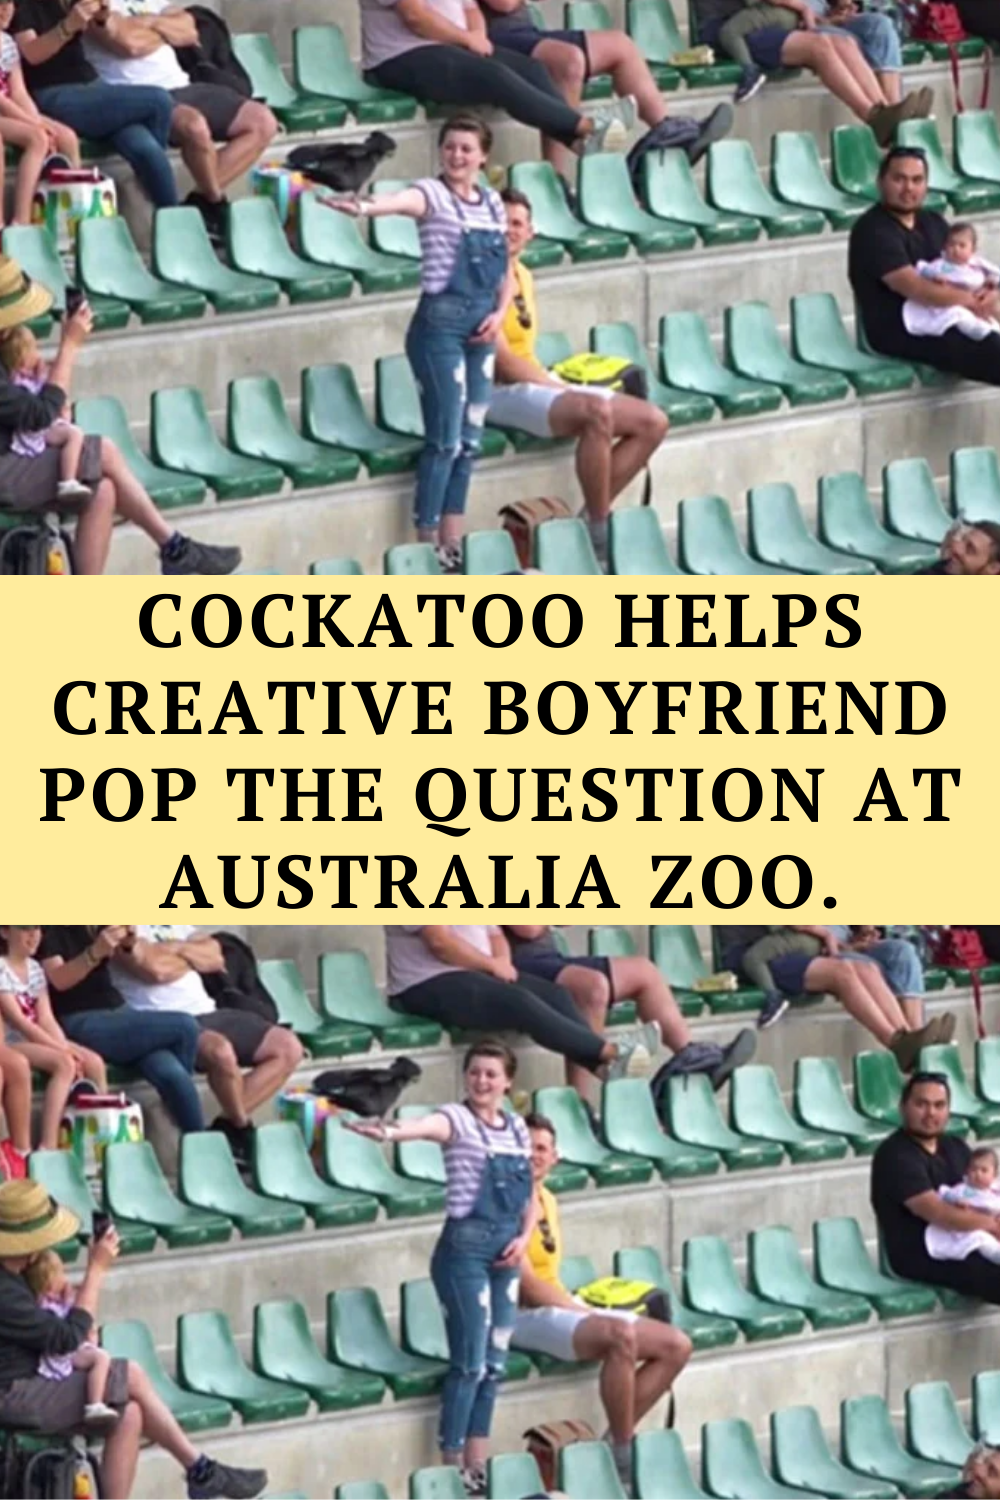 Cockatoo Helps Creative Boyfriend Pop The Question At Australia Zoo In 2021 Inspirational Short Stories Spotlight Stories Random Acts Of Kindness